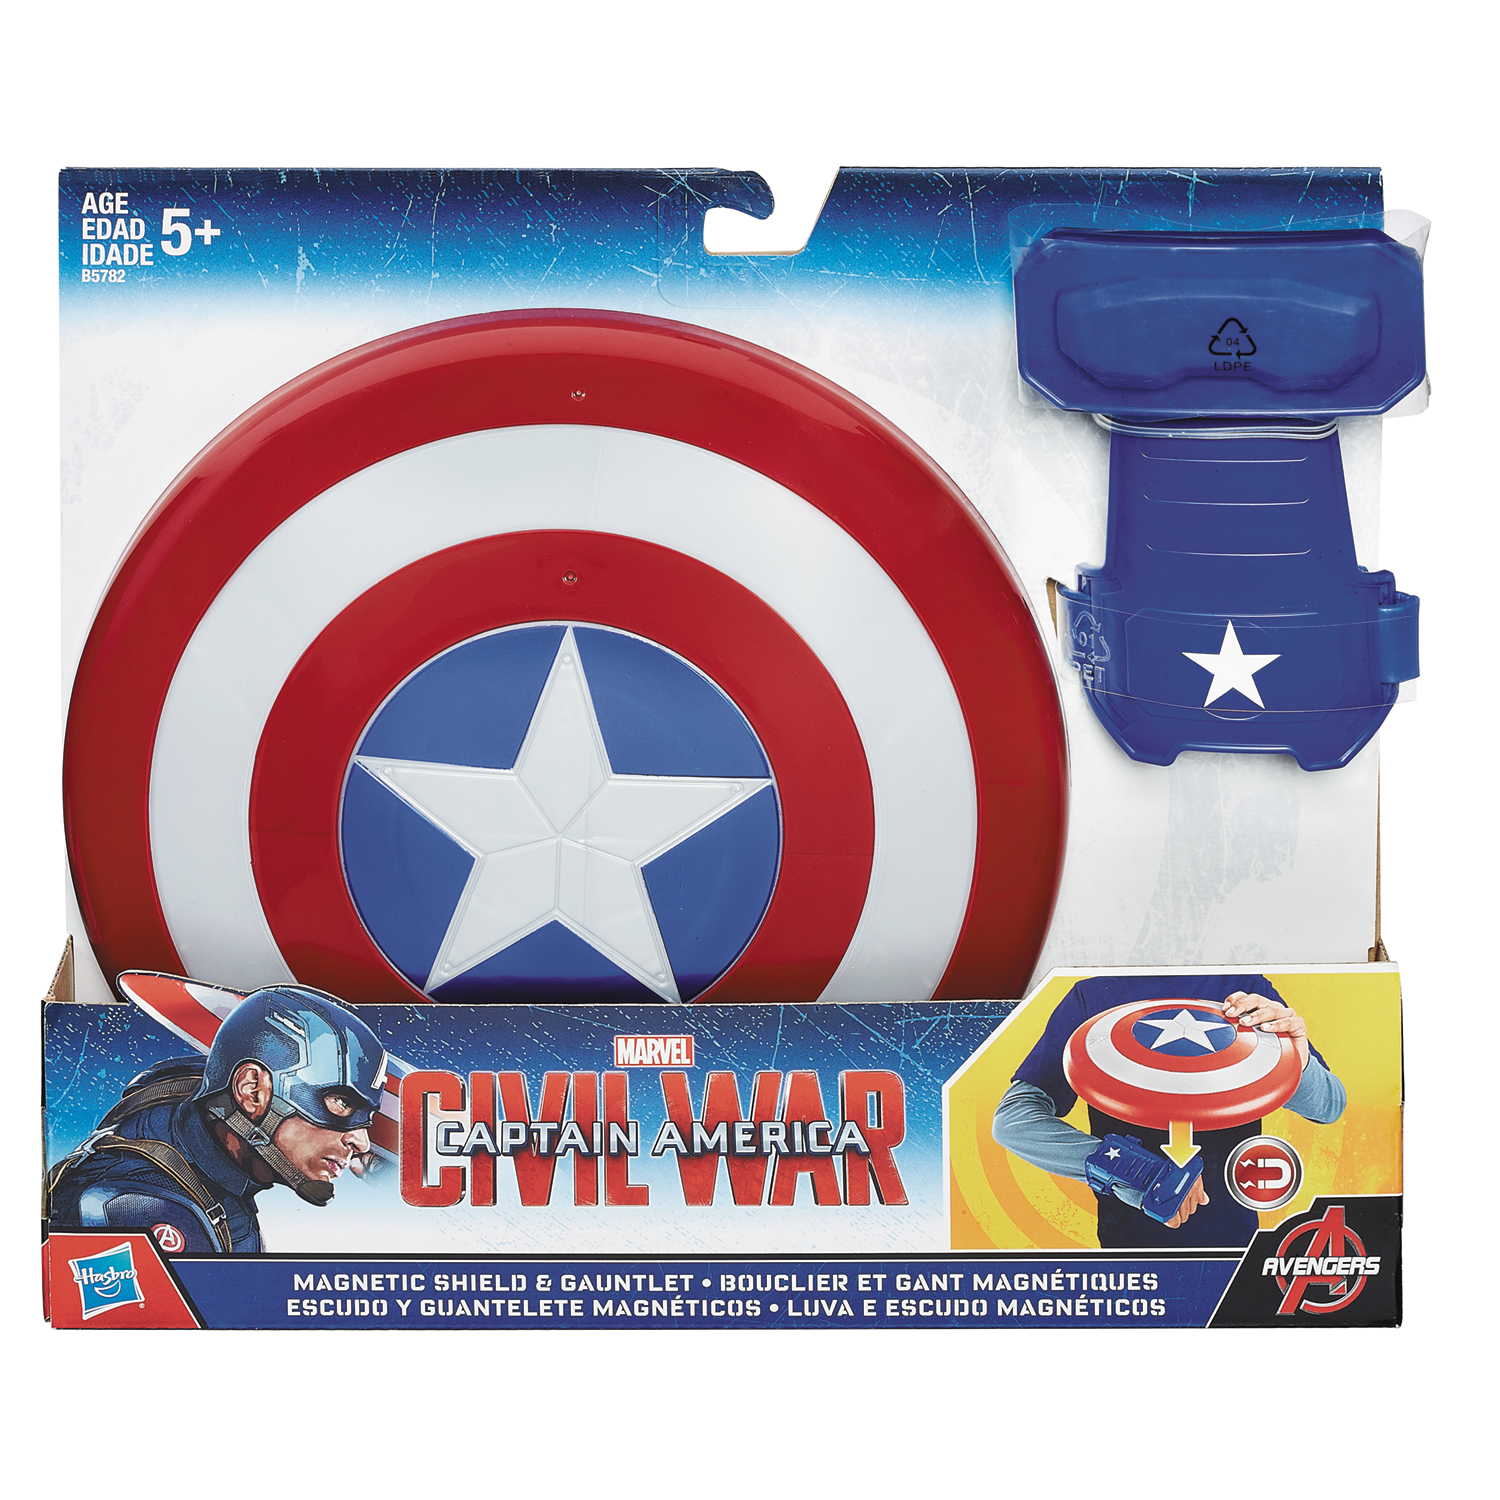 CAPTAIN AMERICA CW MAGNETIC SHIELD/GAUNTLET CS